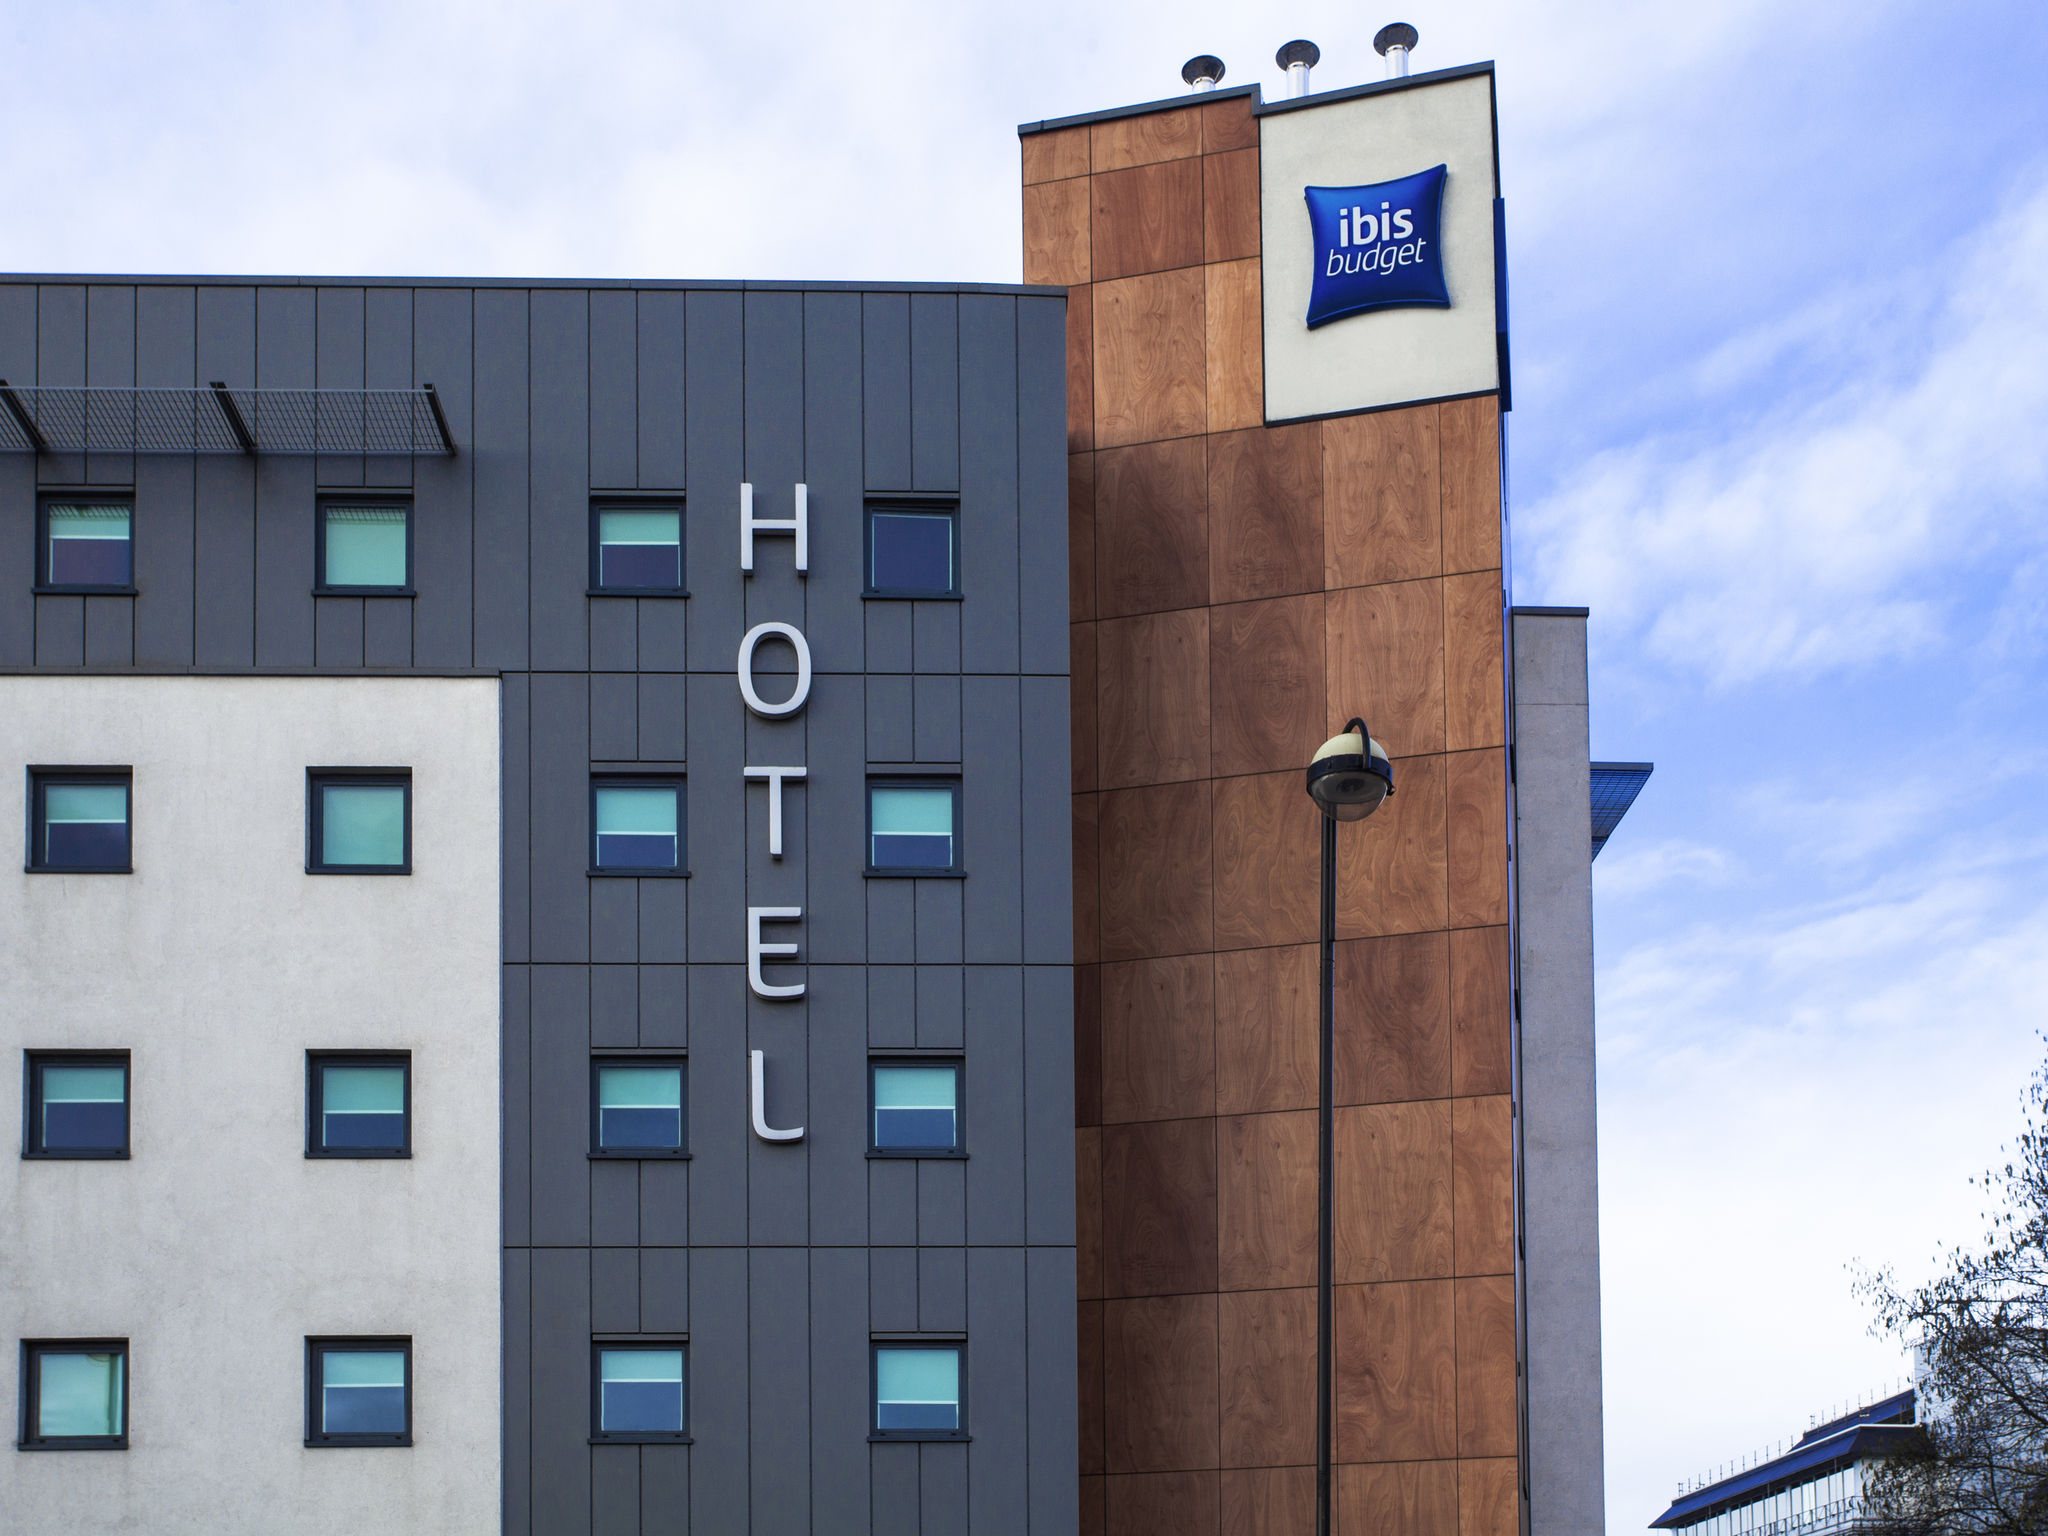 Hotel Ibis Budget London Hounslow